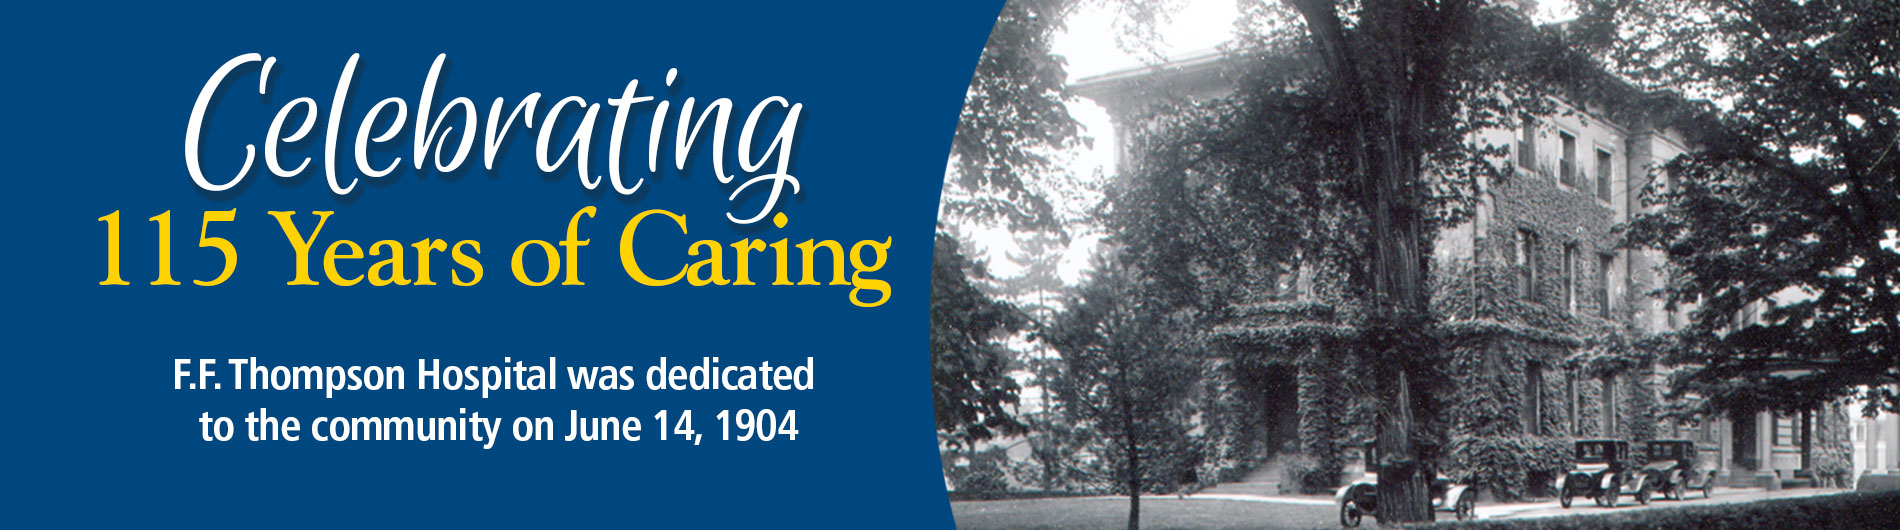 Celebrating 115 Years of Caring